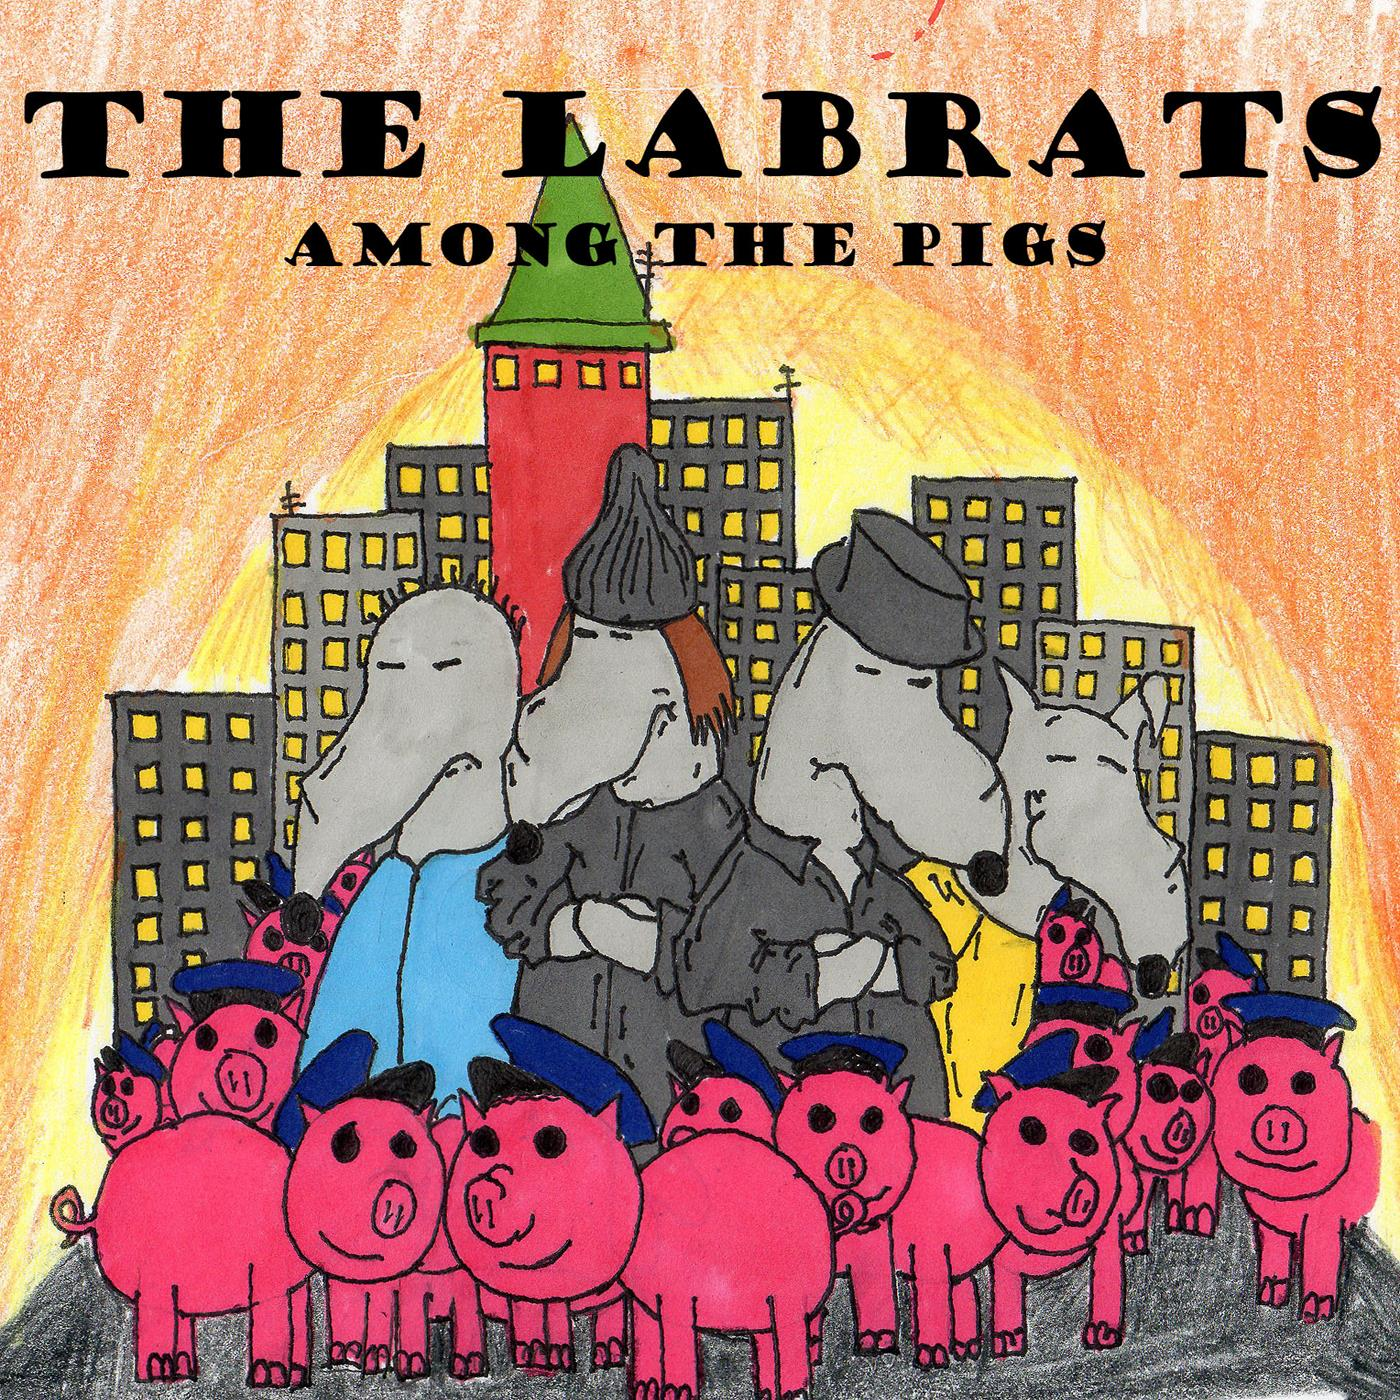 Among the Pigs